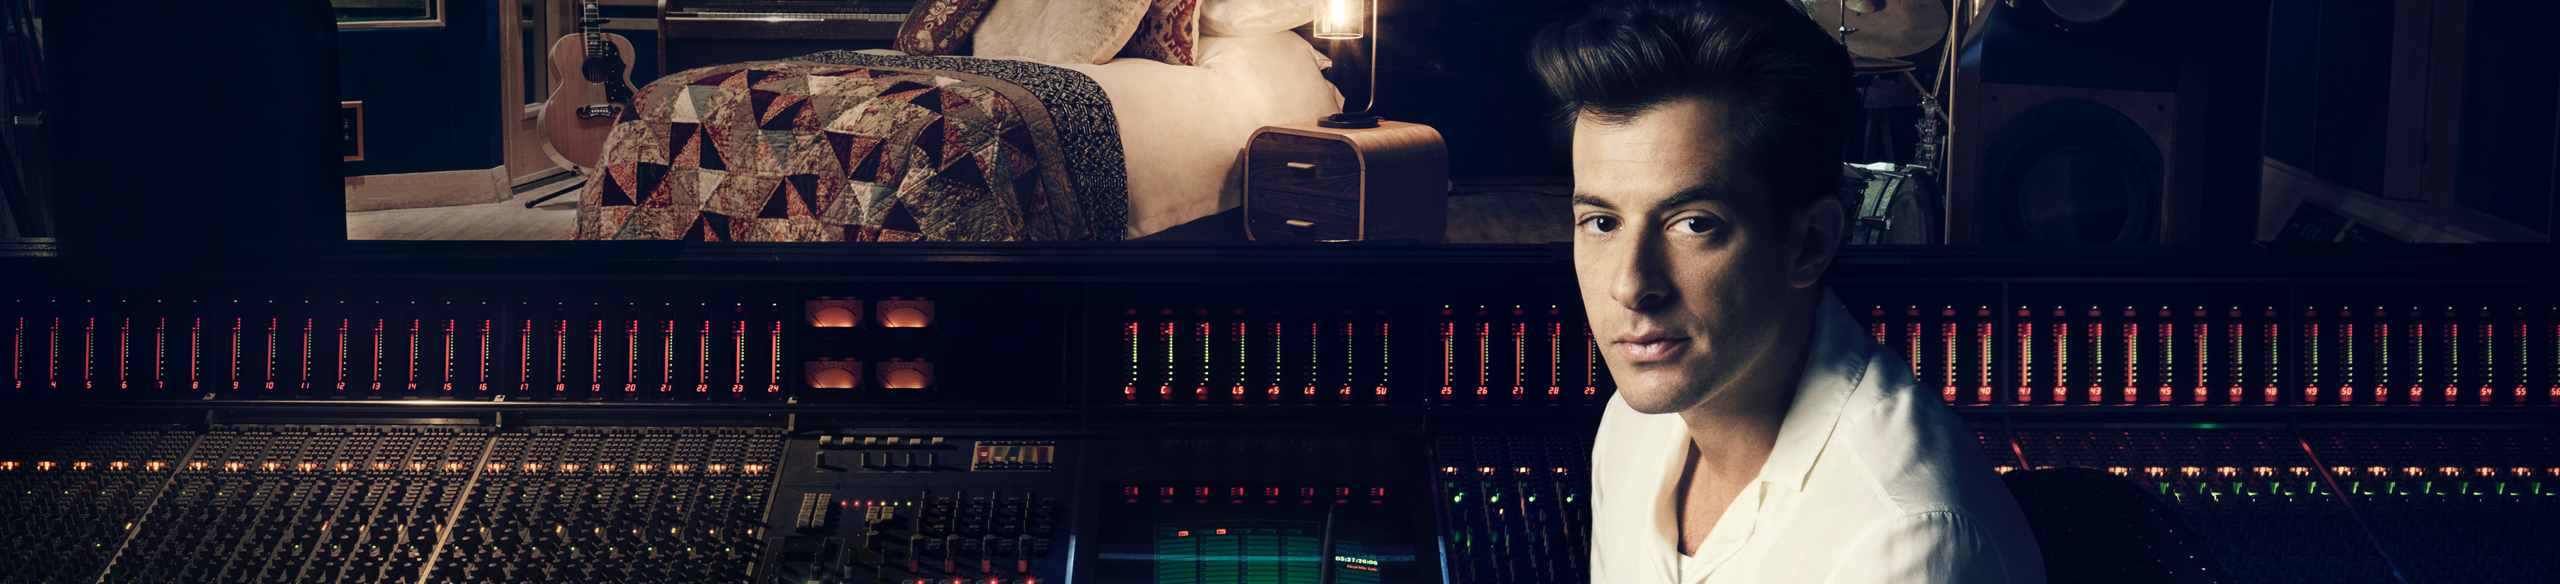 A Night At Abbey Road Studios: Live in the Home of Recorded Music with Airbnb